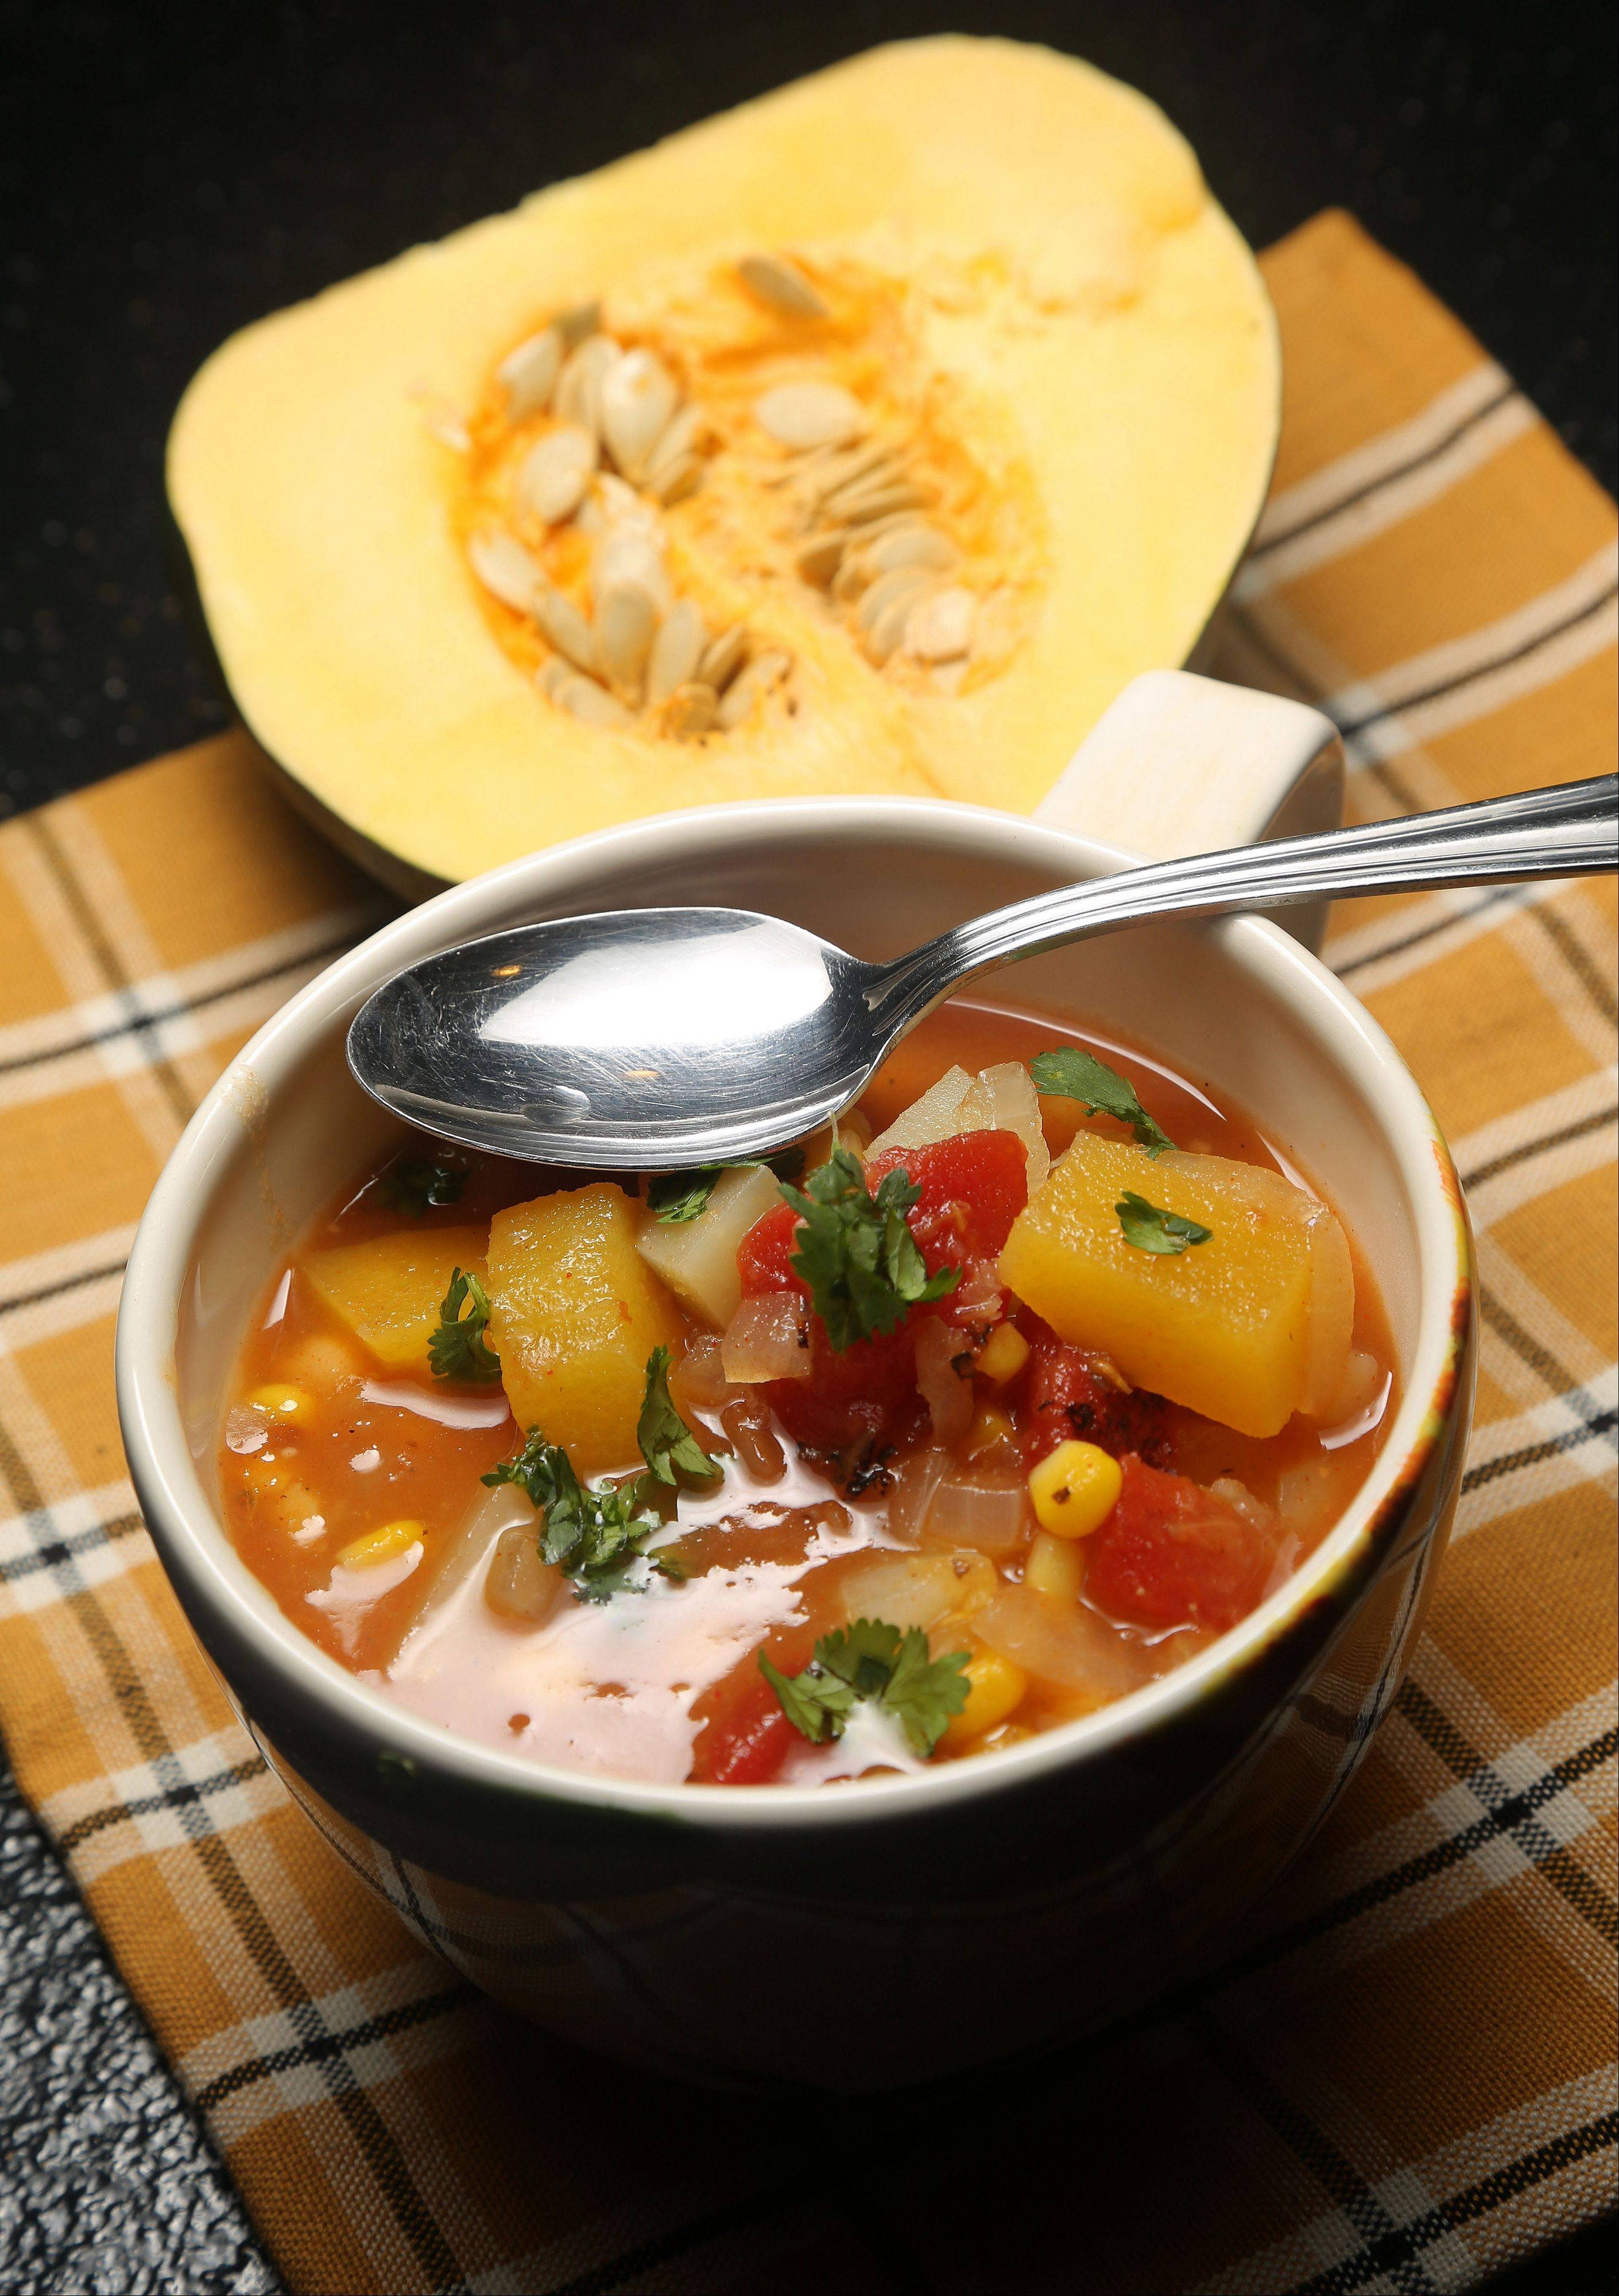 Beans add fiber and protein and make this autumn squash soup a healthful, hearty meatless meal.